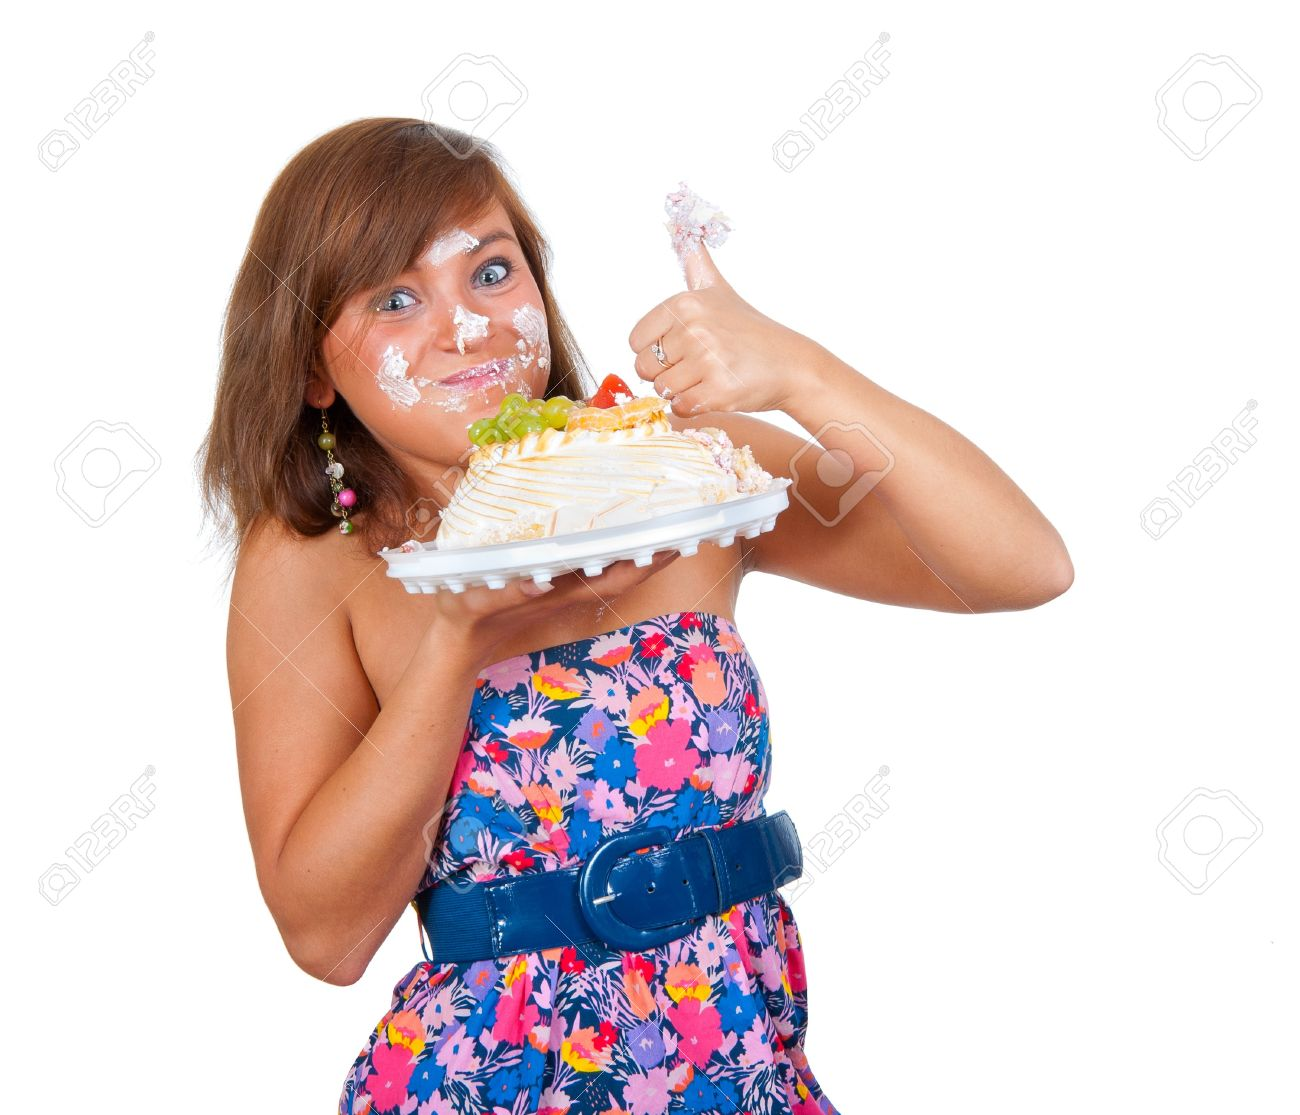 Girl eating cake with his hands, her face stained cream. Stock Photo - 7314731